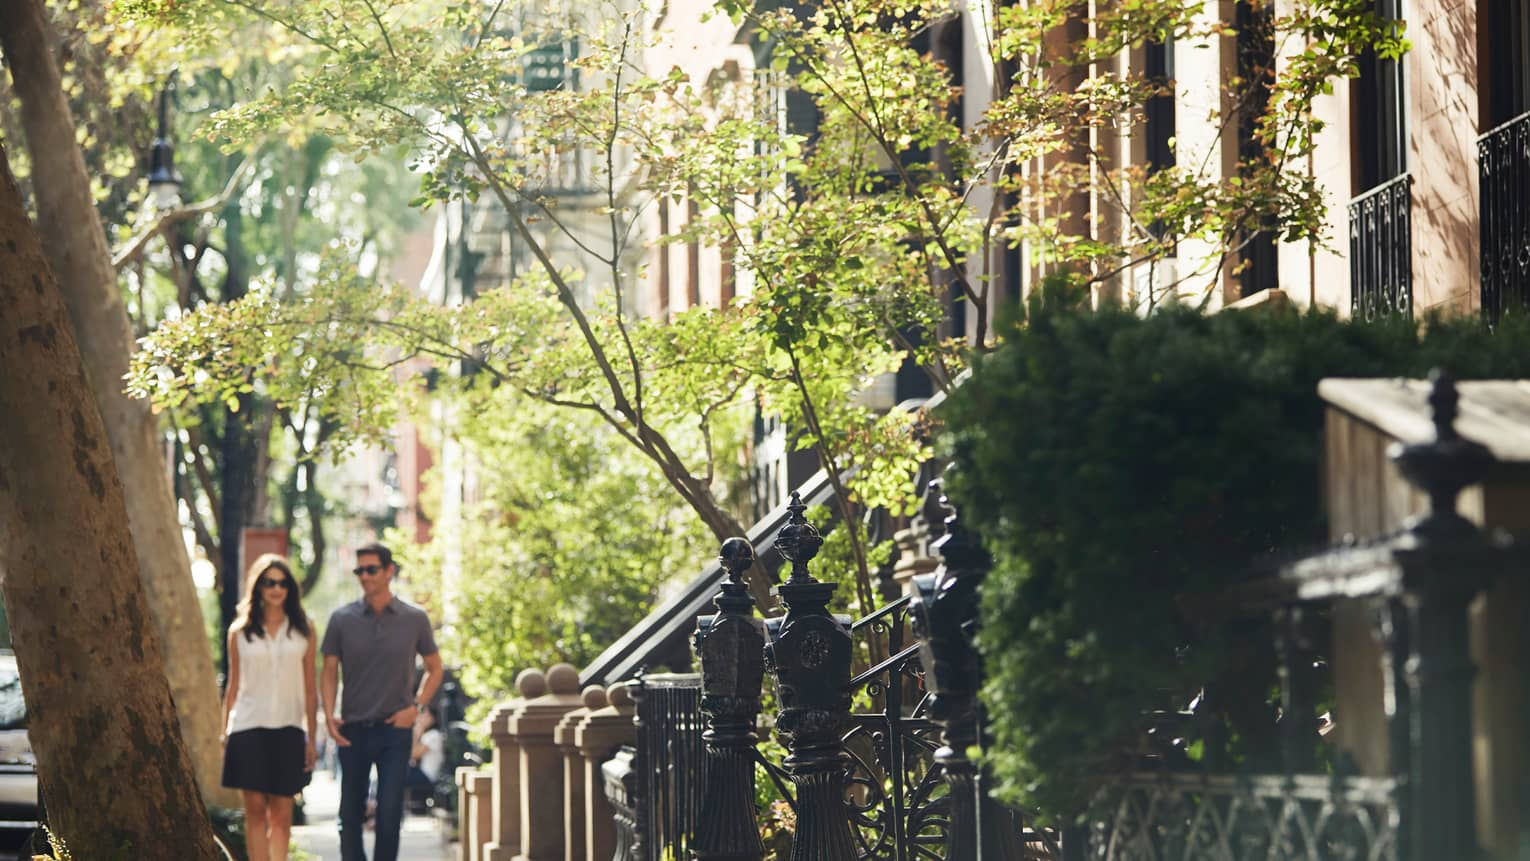 Man and woman hold hands, walk down New York residential sidewalk past iron posts